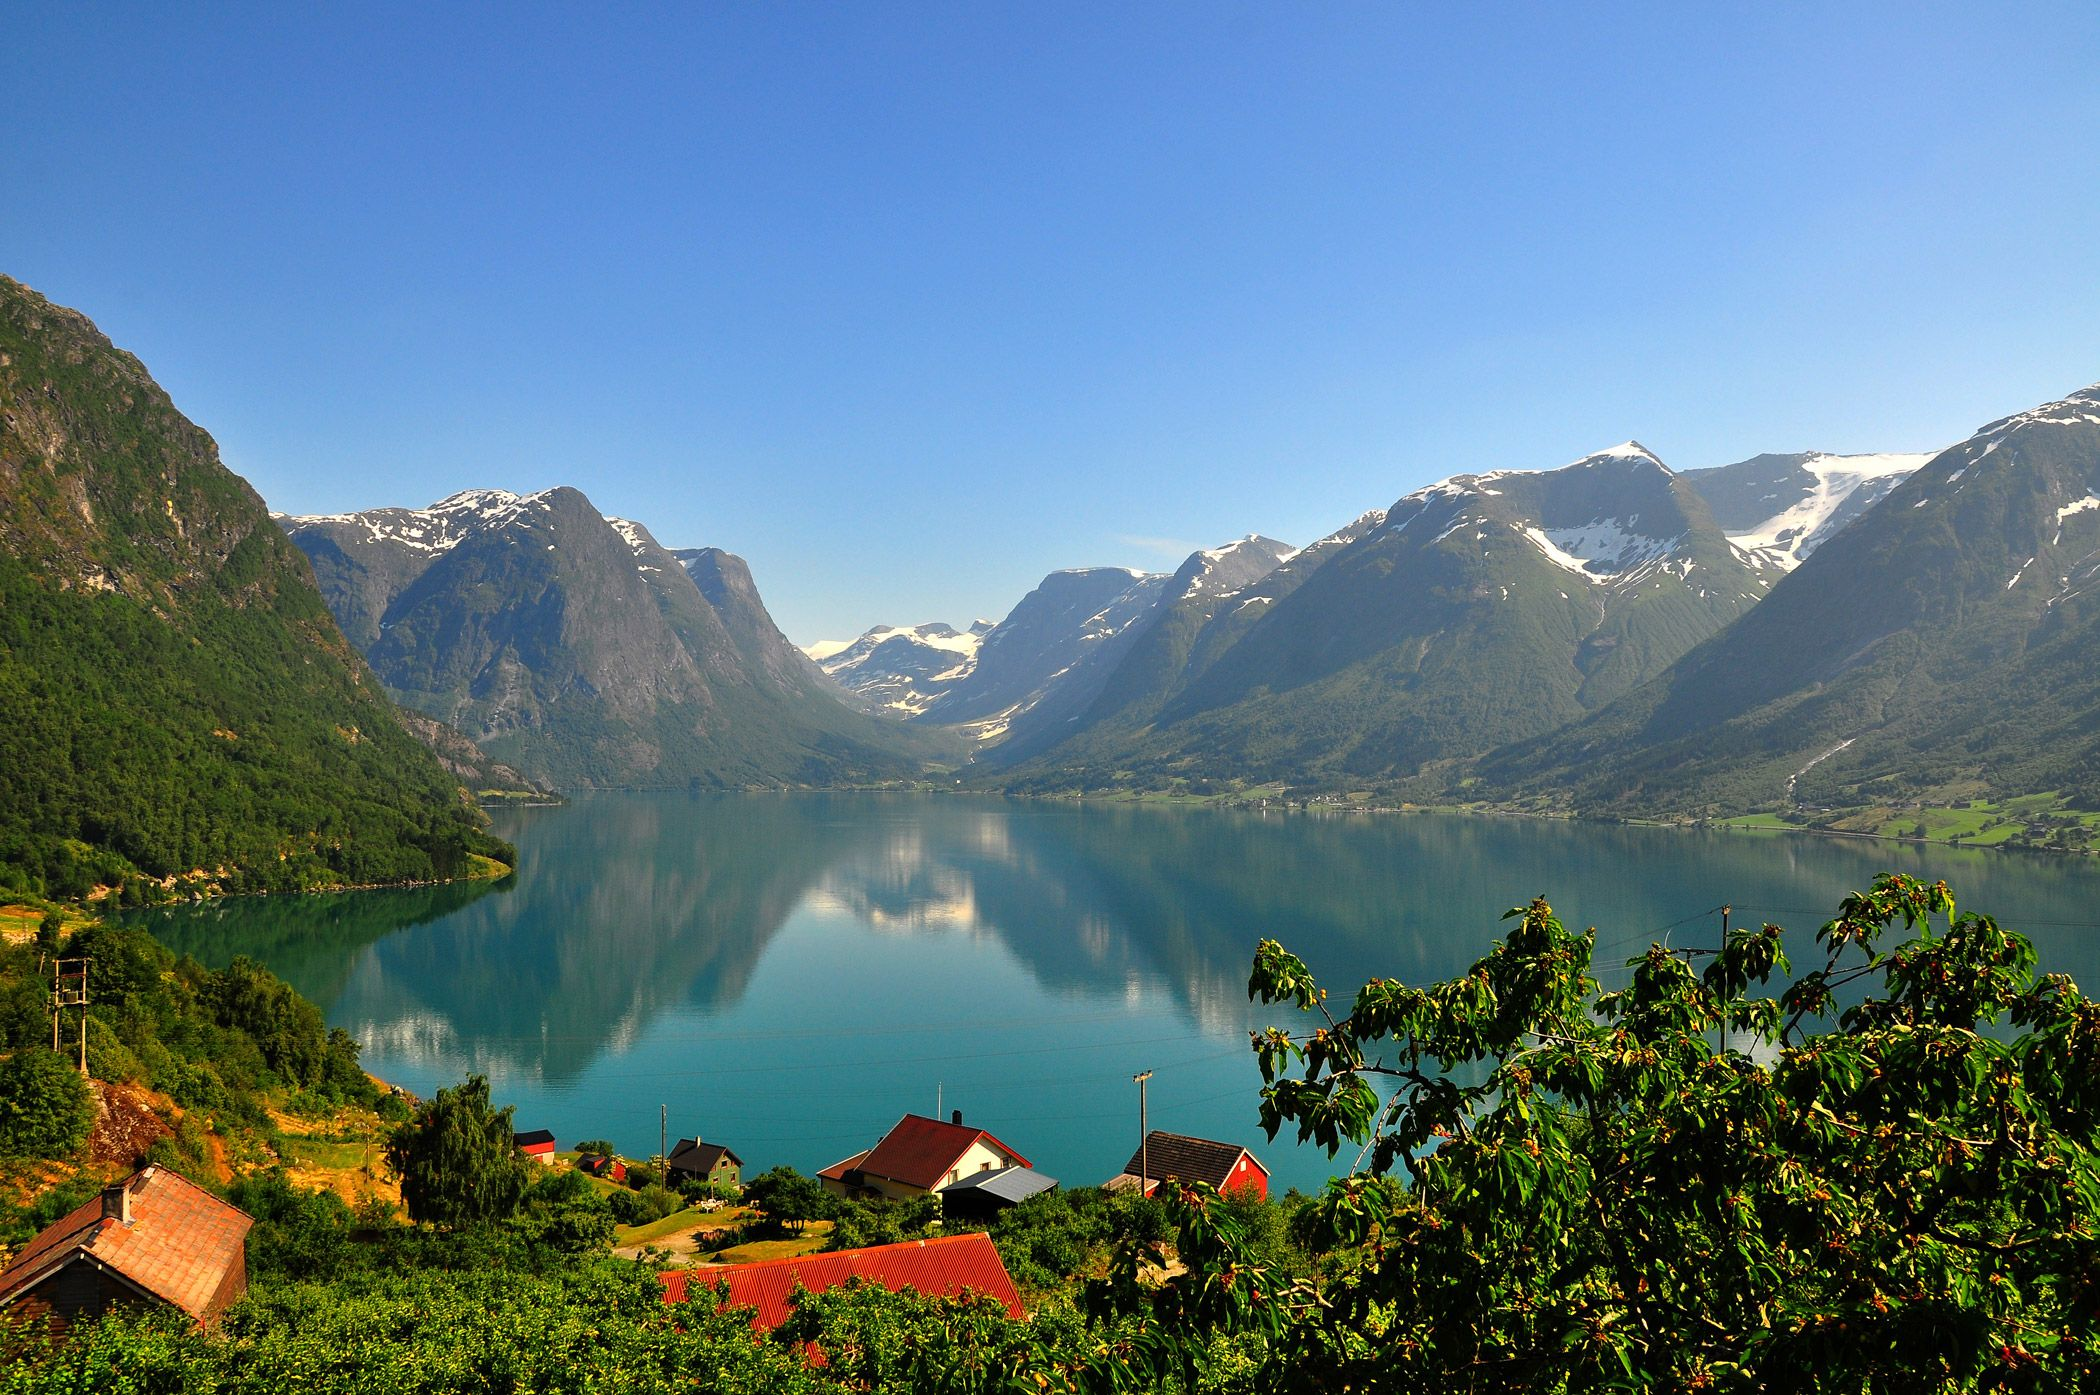 The fruit farms of Flo, Nordfjord, Norway - #landscape #photography #norway Photo credit: stigkk on Flickr